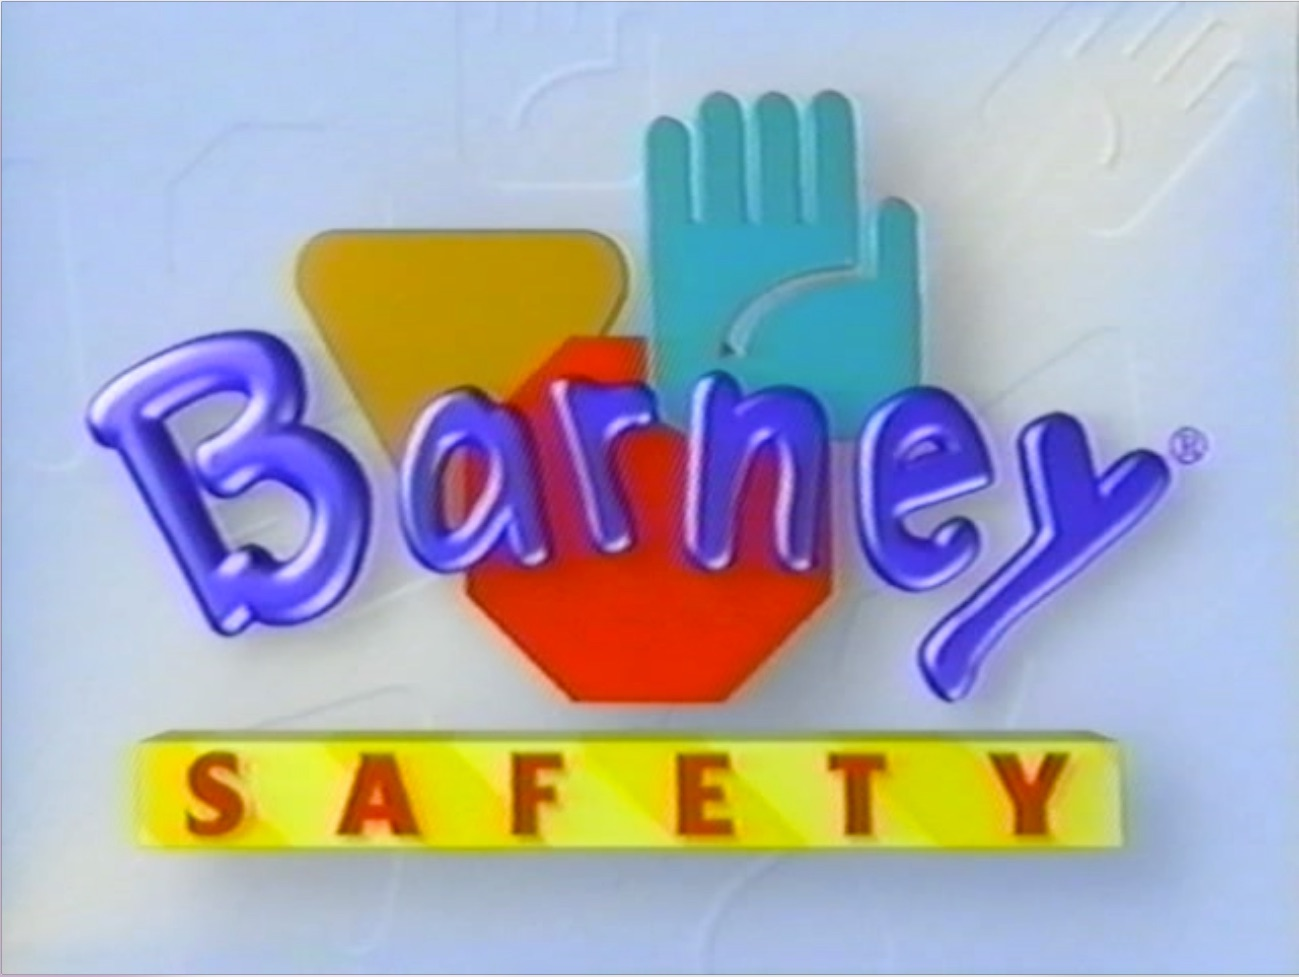 barney safety barney u0026friends wiki fandom powered by wikia